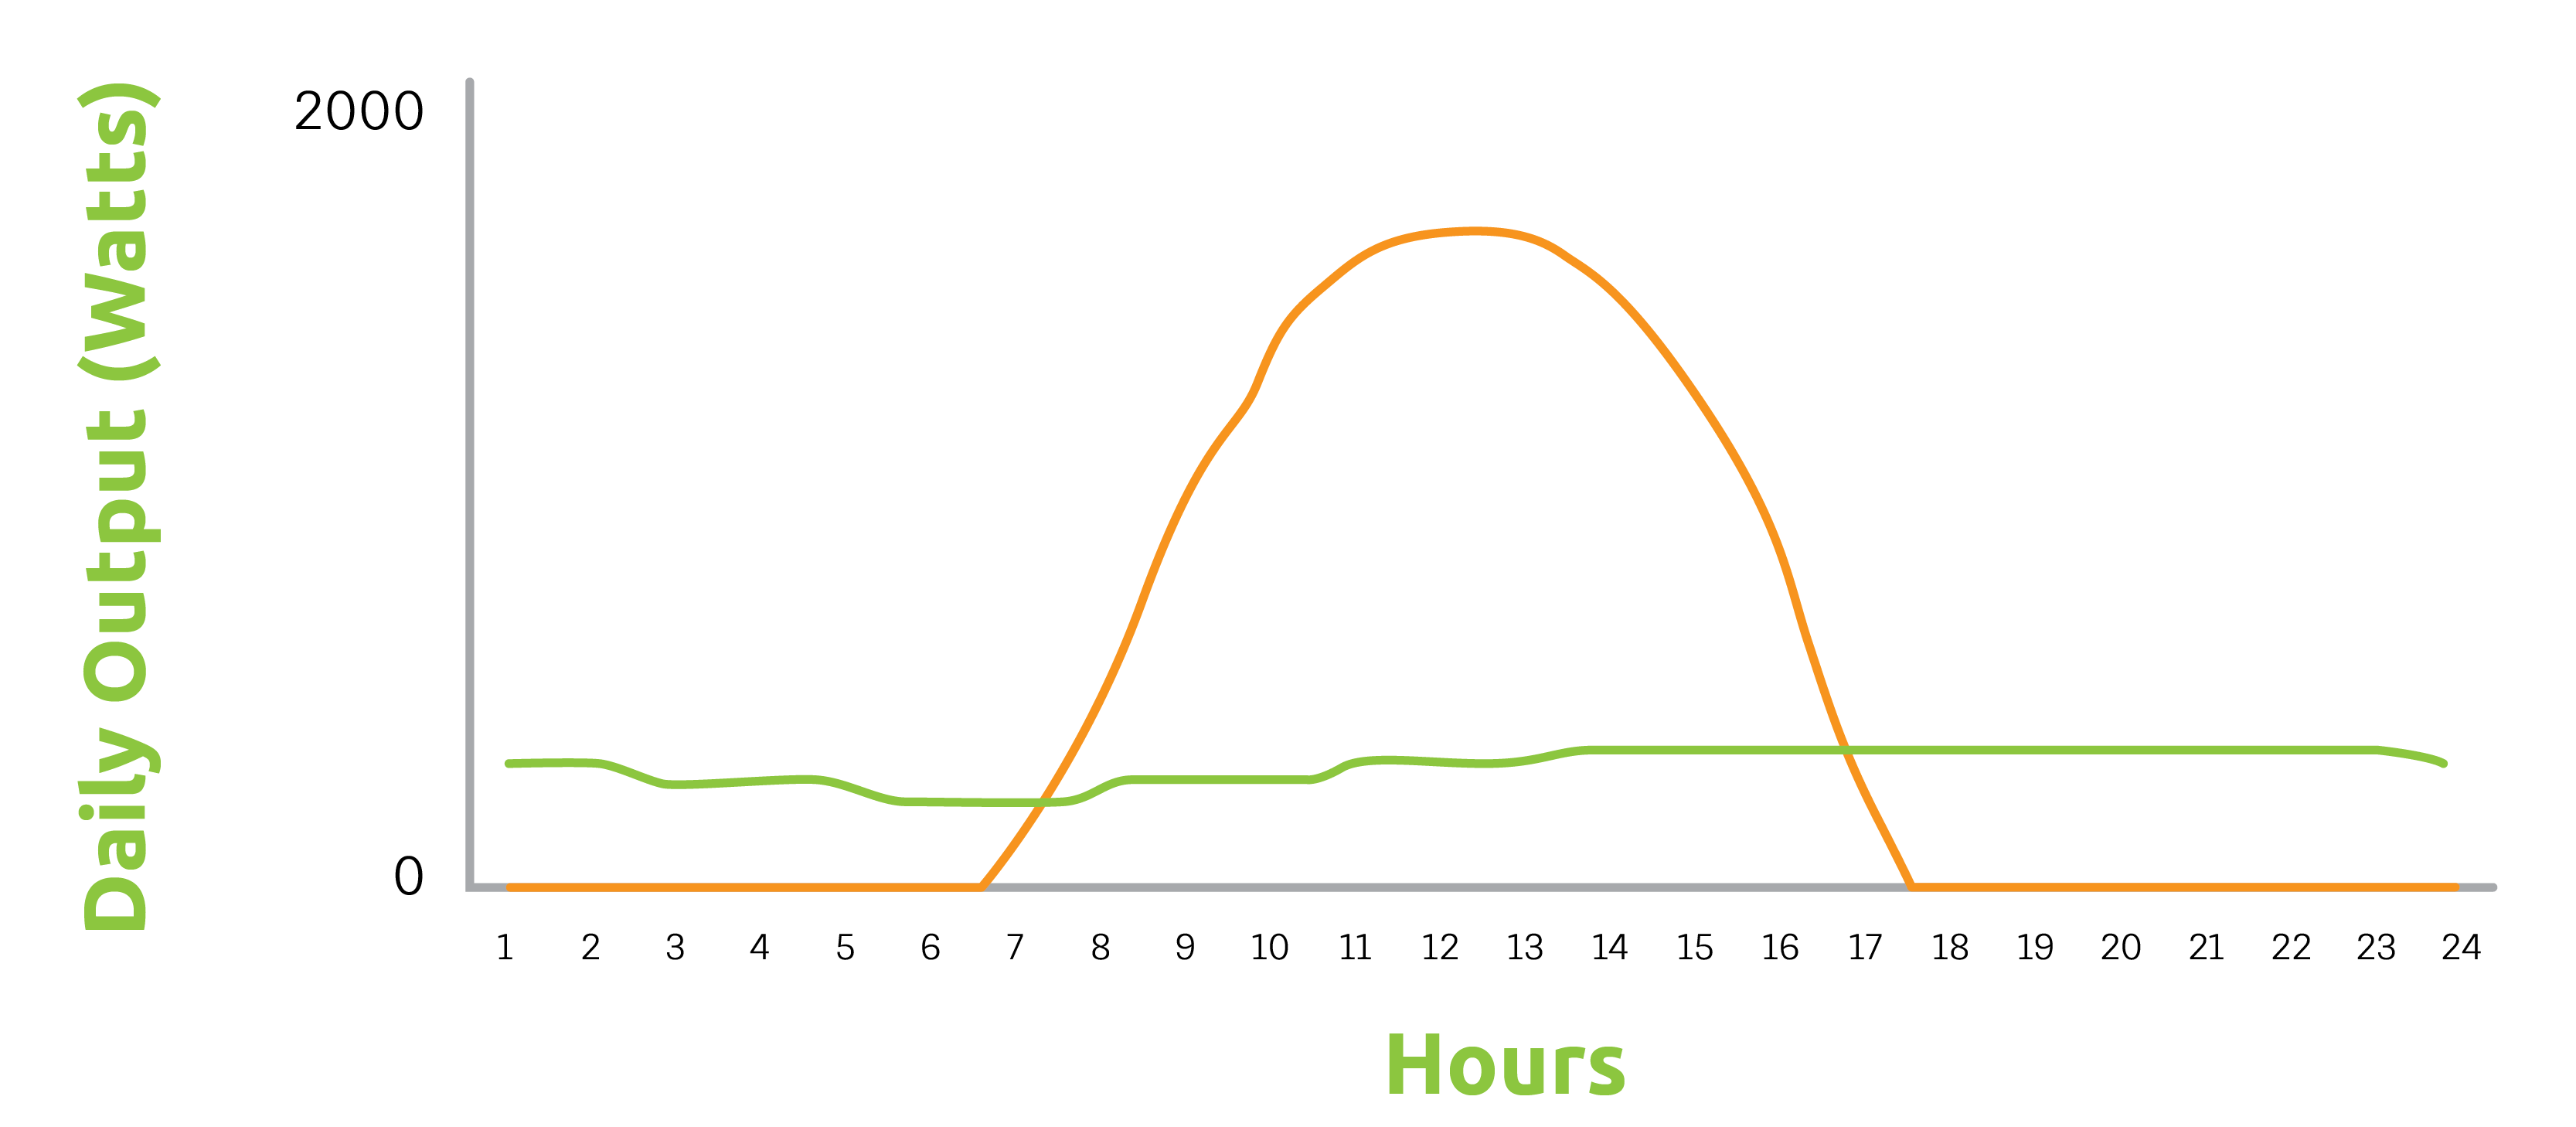 Hybrid Hourly Comparison